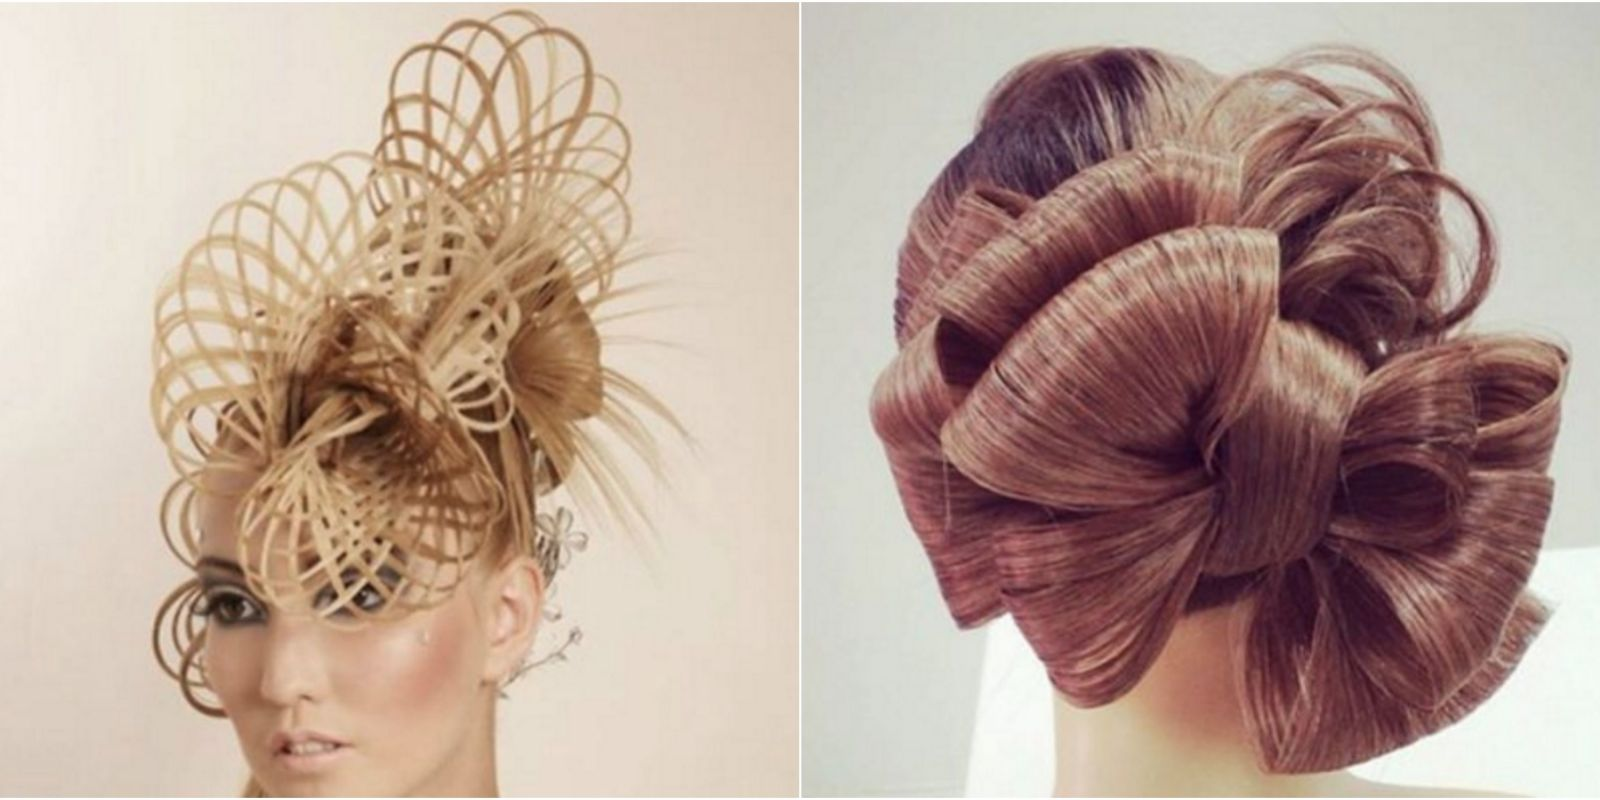 Intricate Hairstyles From Amazing Hairstylists Hair Art